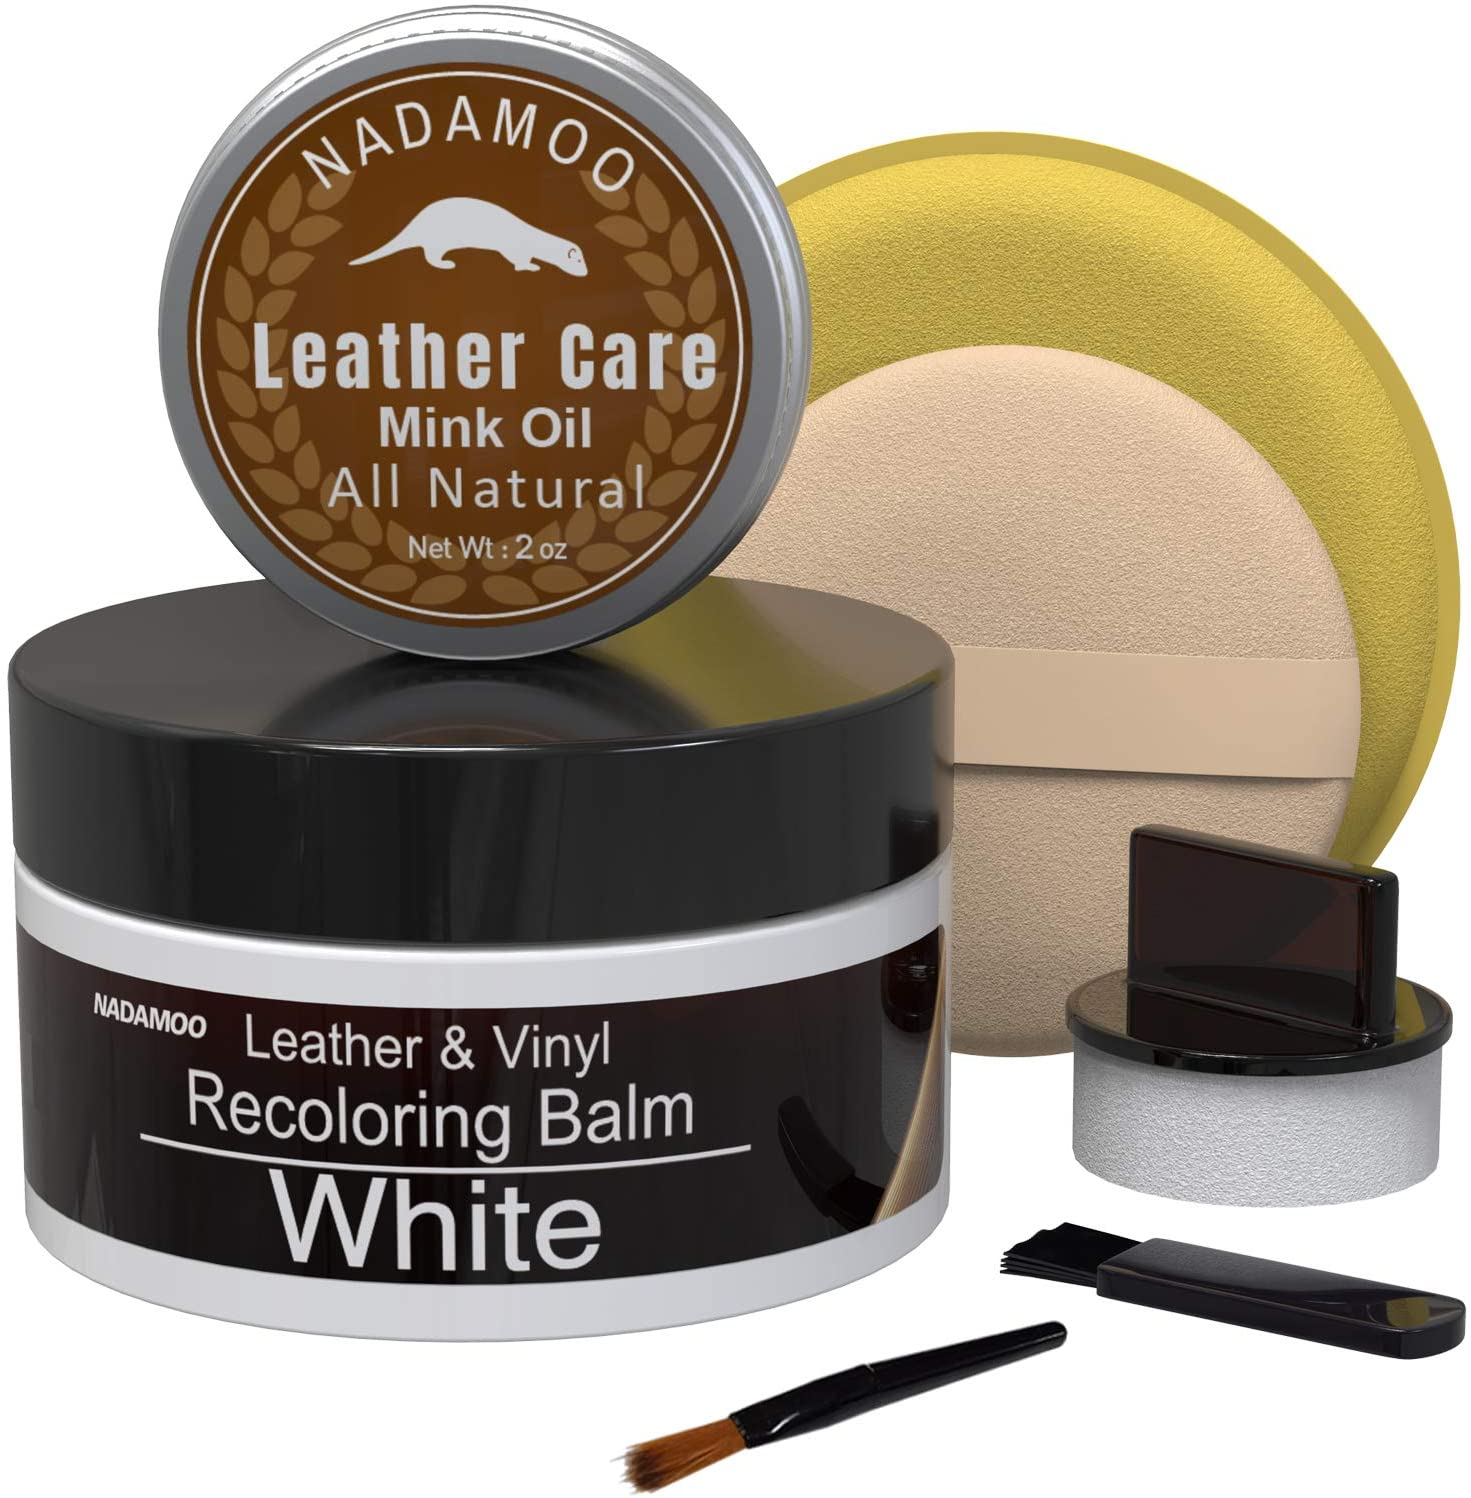 NADAMOO White Leather Recoloring Balm with Mink Oil Leather Conditioner, Leather Repair Kits for Couches, Restoration Cream Scratch Repair Leather Dye For Vinyl Furniture Car Seat, Sofa, Shoes